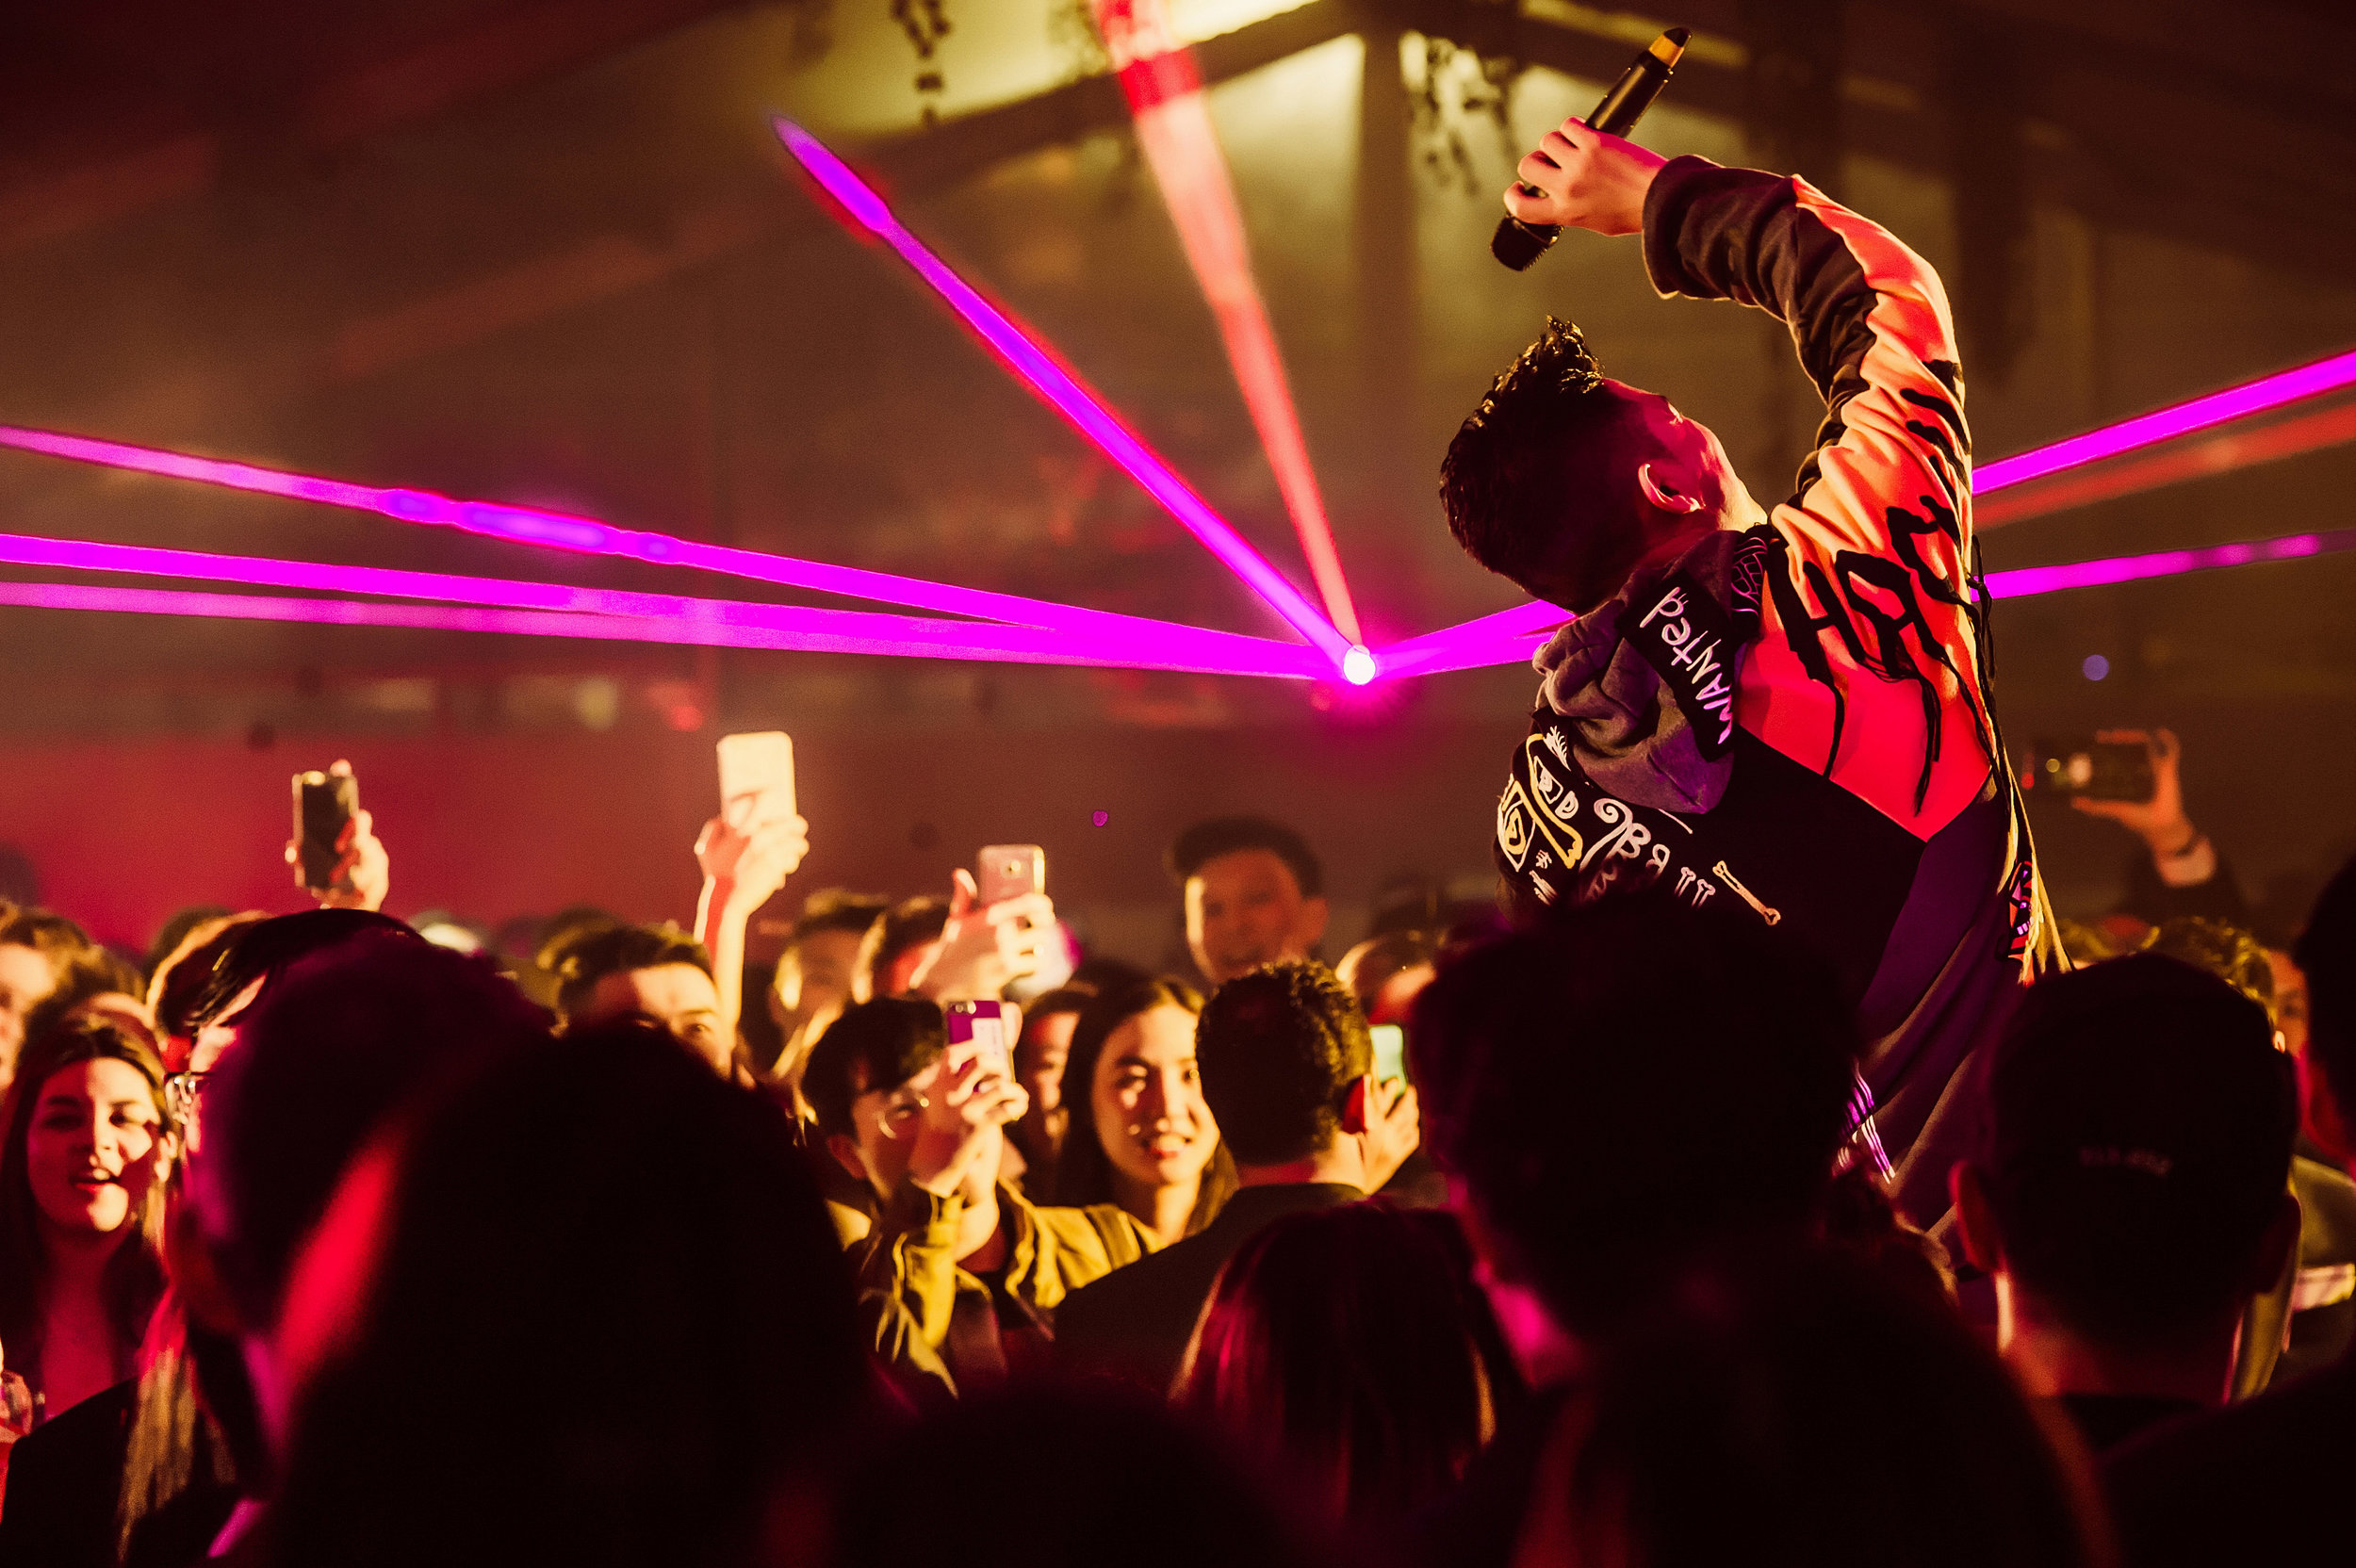 MC Jin brought the night to the next level!